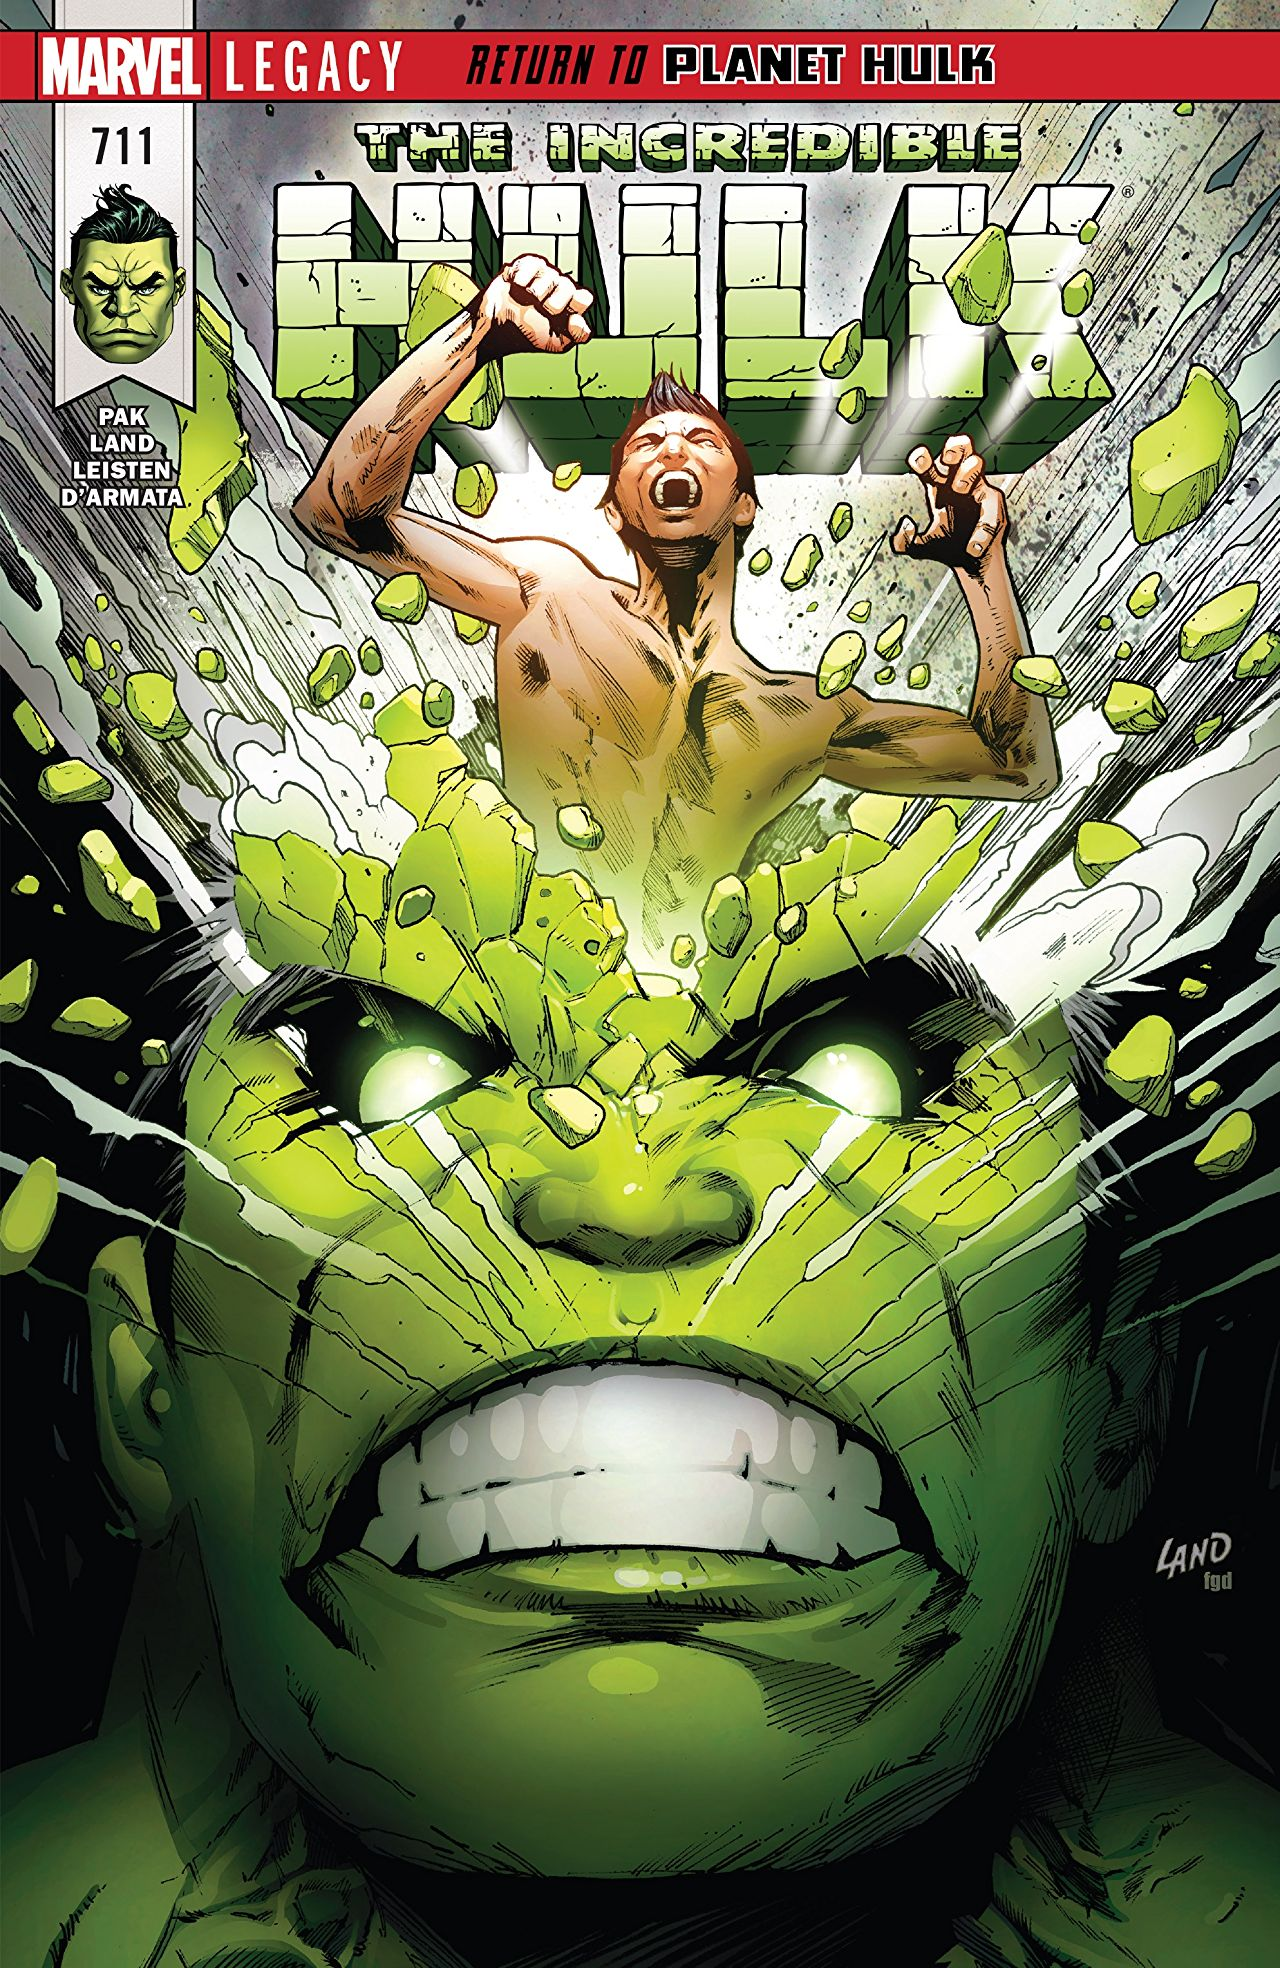 2017.12.20 – INCREDIBLE HULK #711 in stores today!